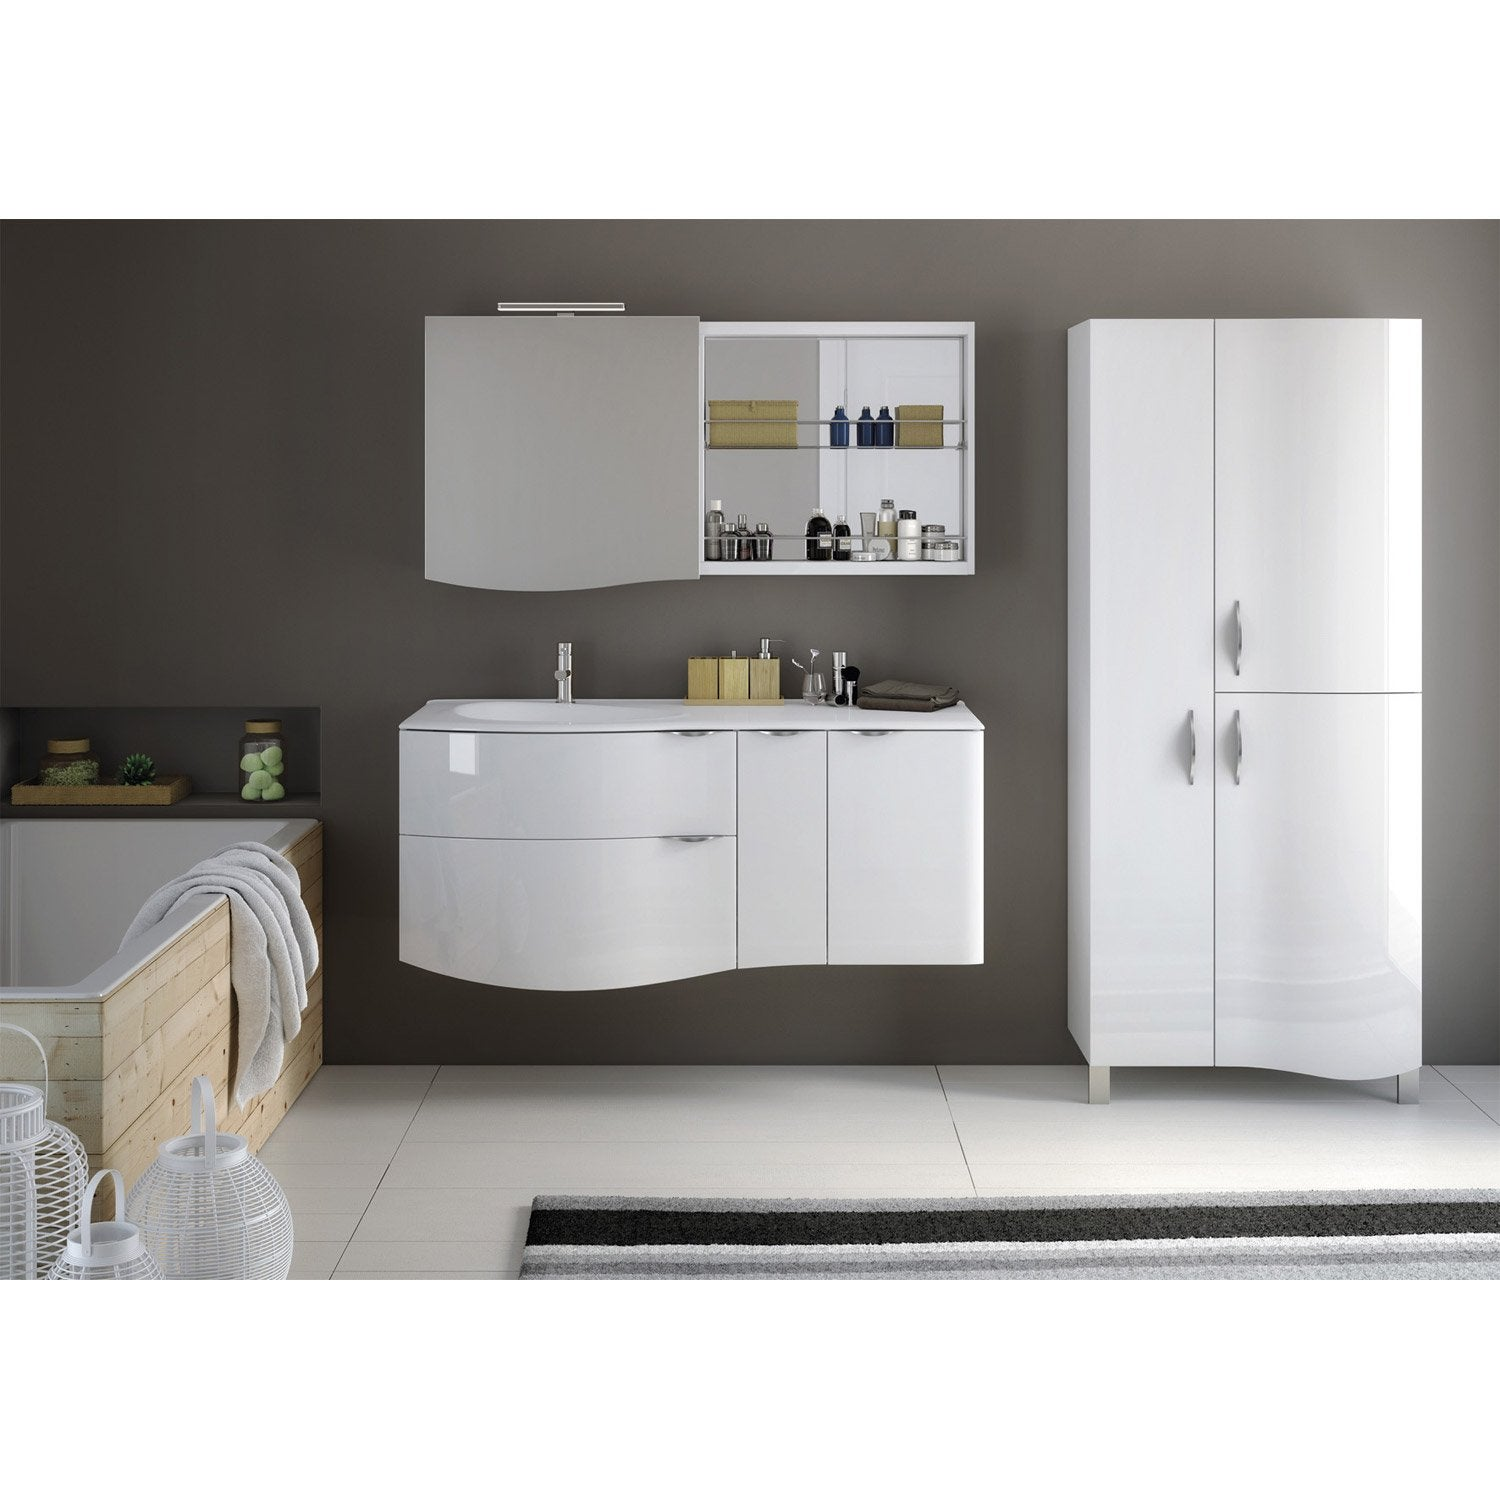 meuble de salle de bains plus de 120 blanc elegance leroy merlin. Black Bedroom Furniture Sets. Home Design Ideas